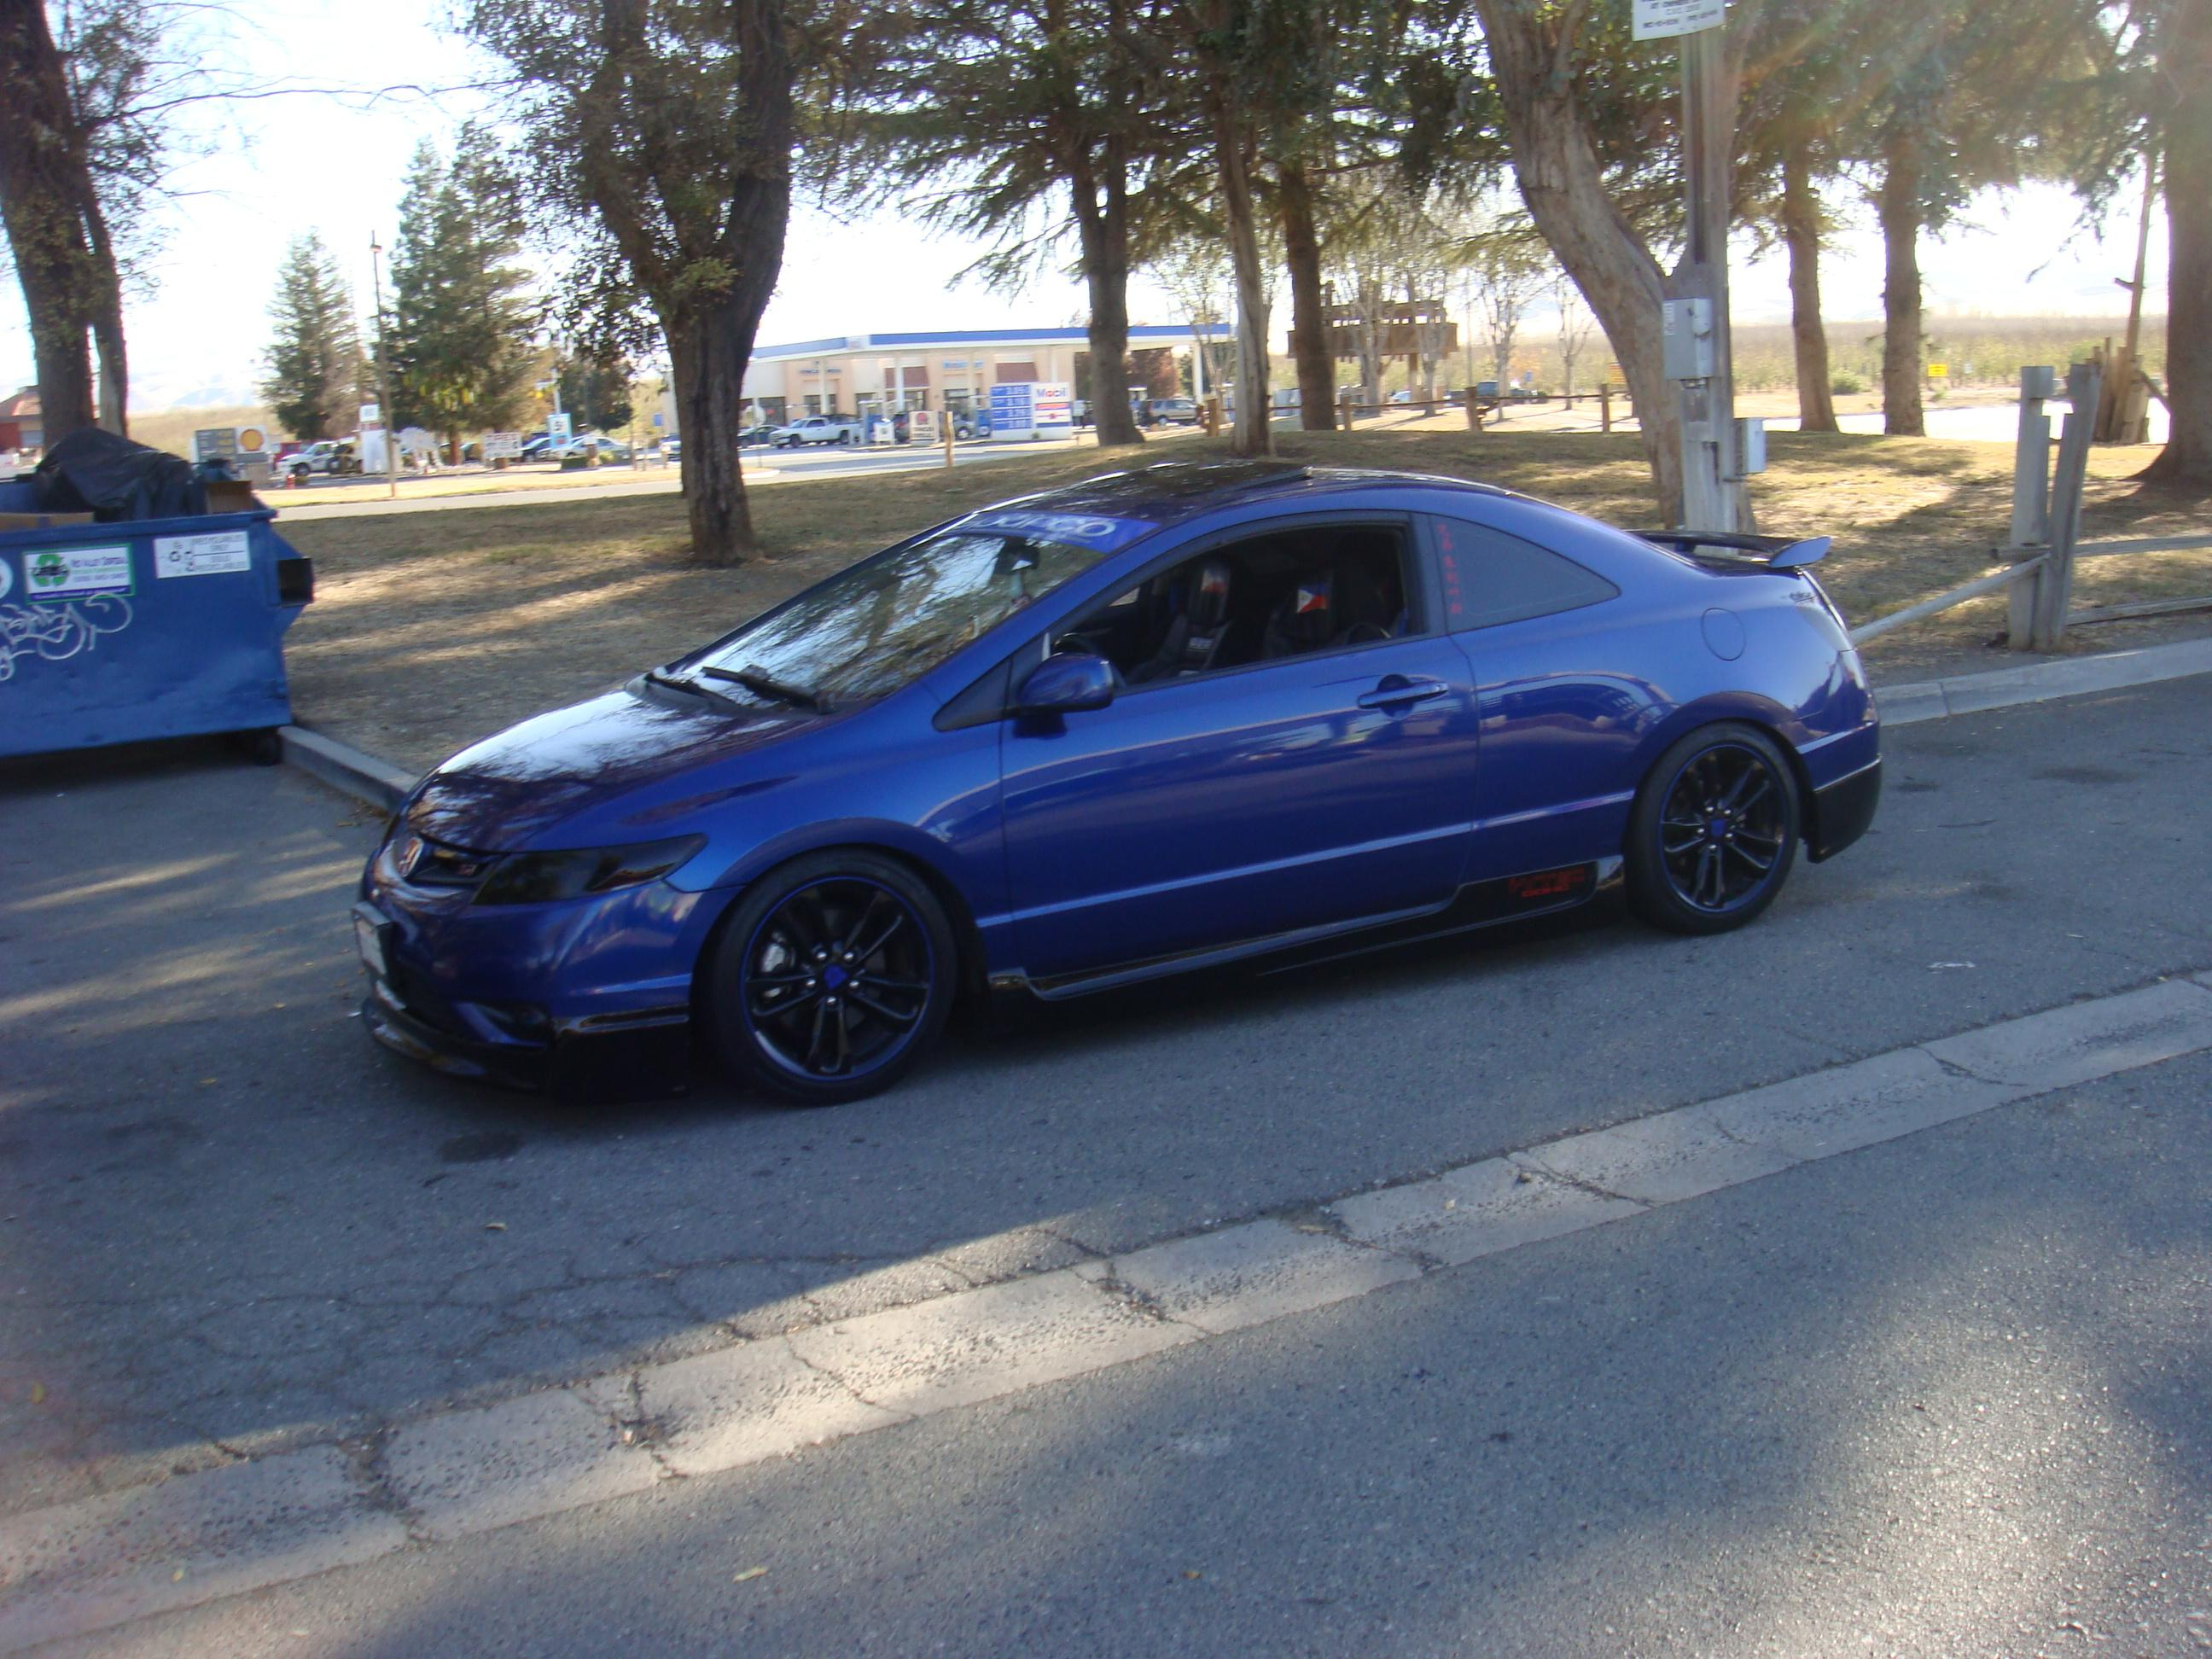 Toolitz's 2007 Honda Civic